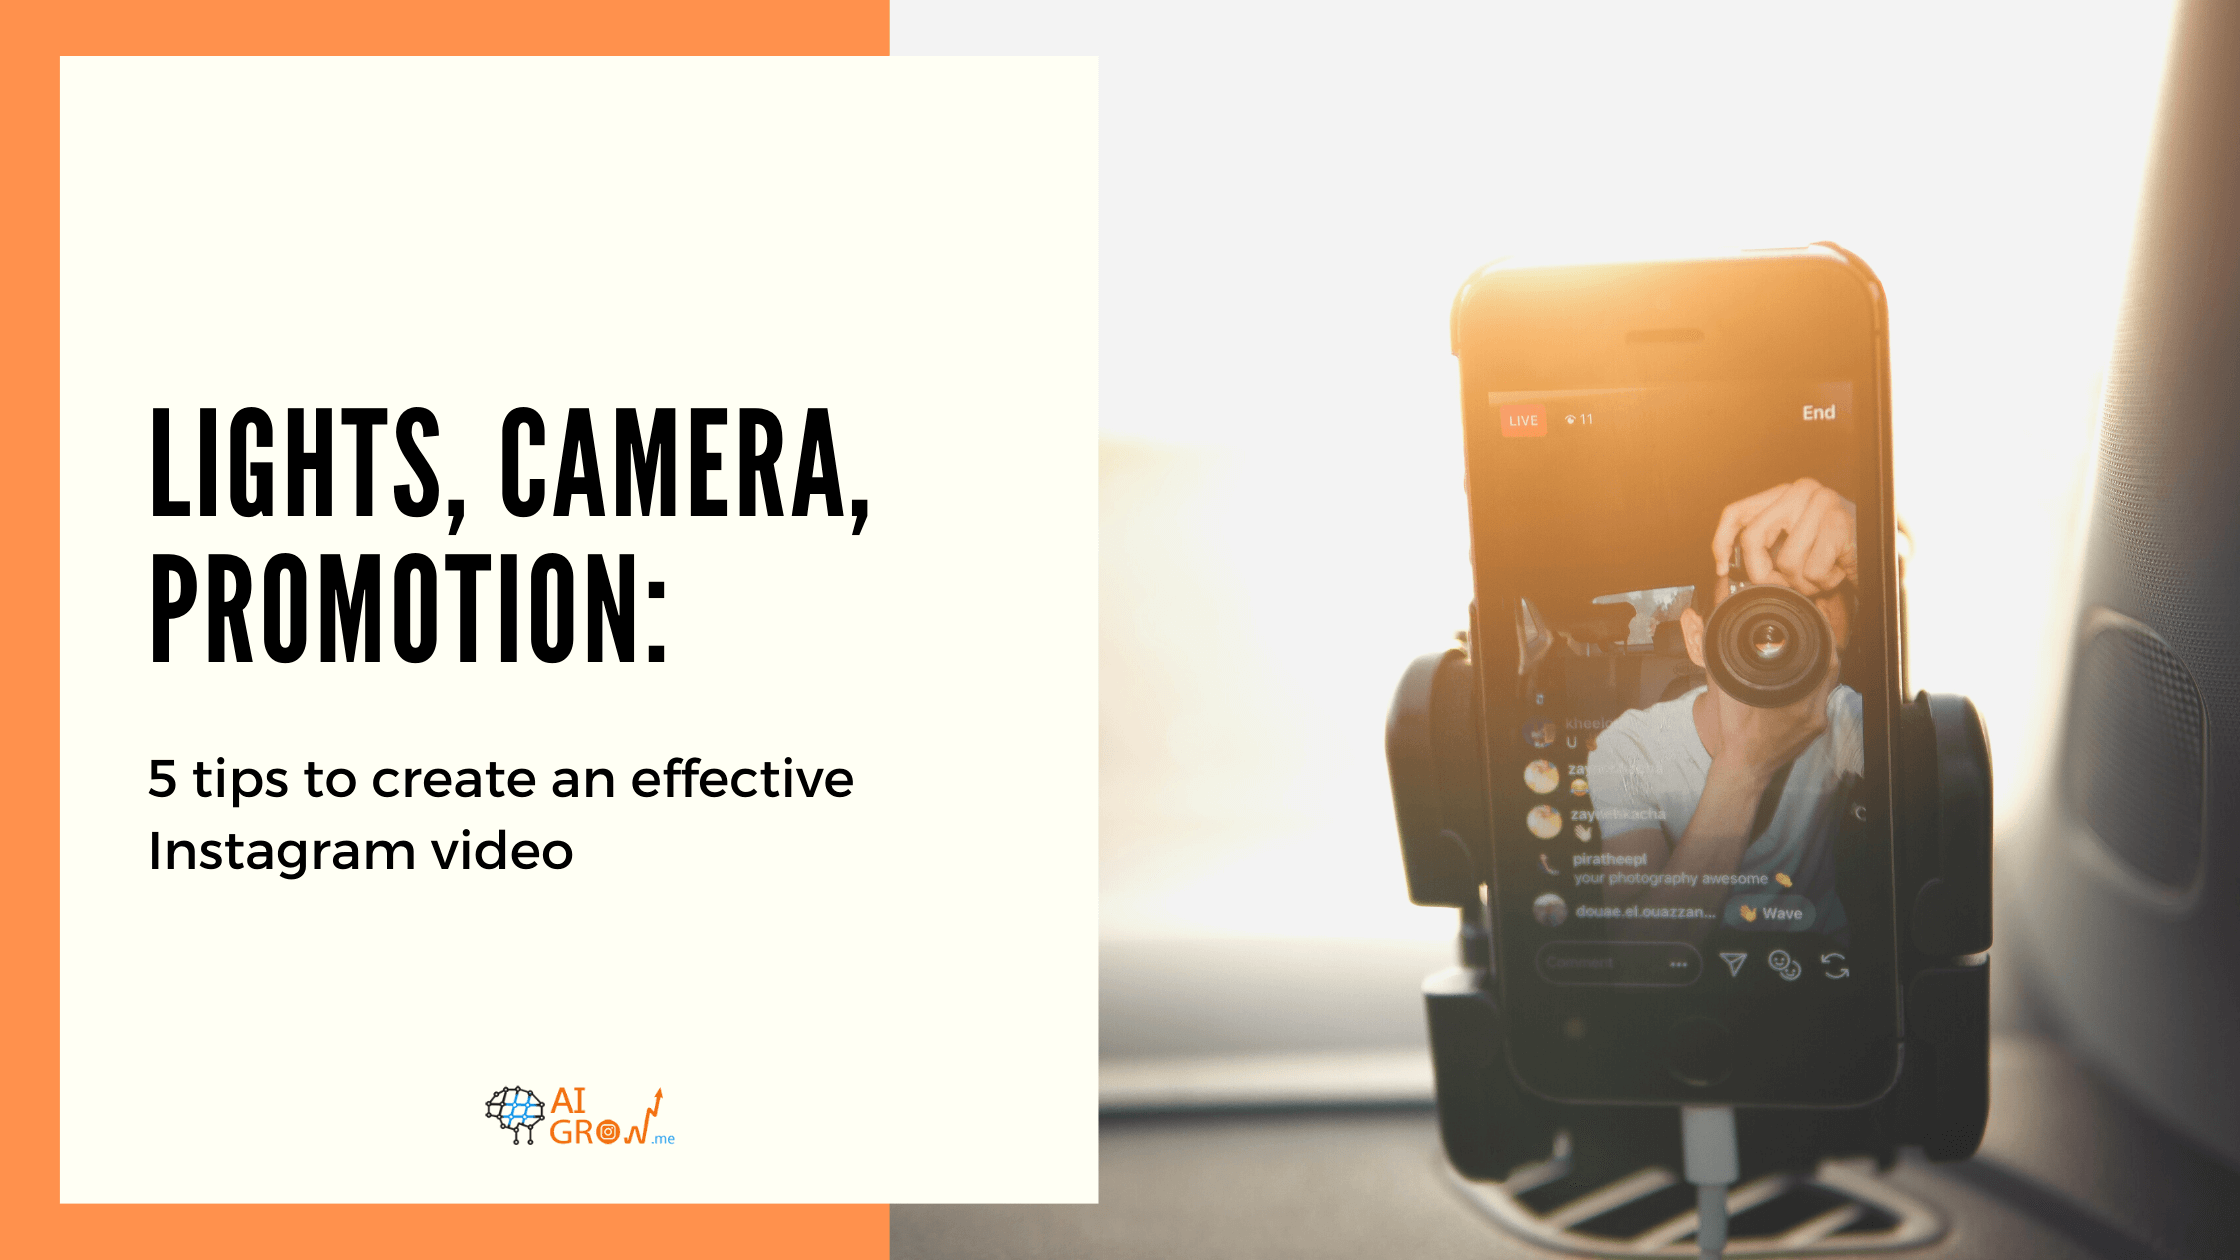 Lights, camera, promotion: 5 tips to create an effective Instagram video